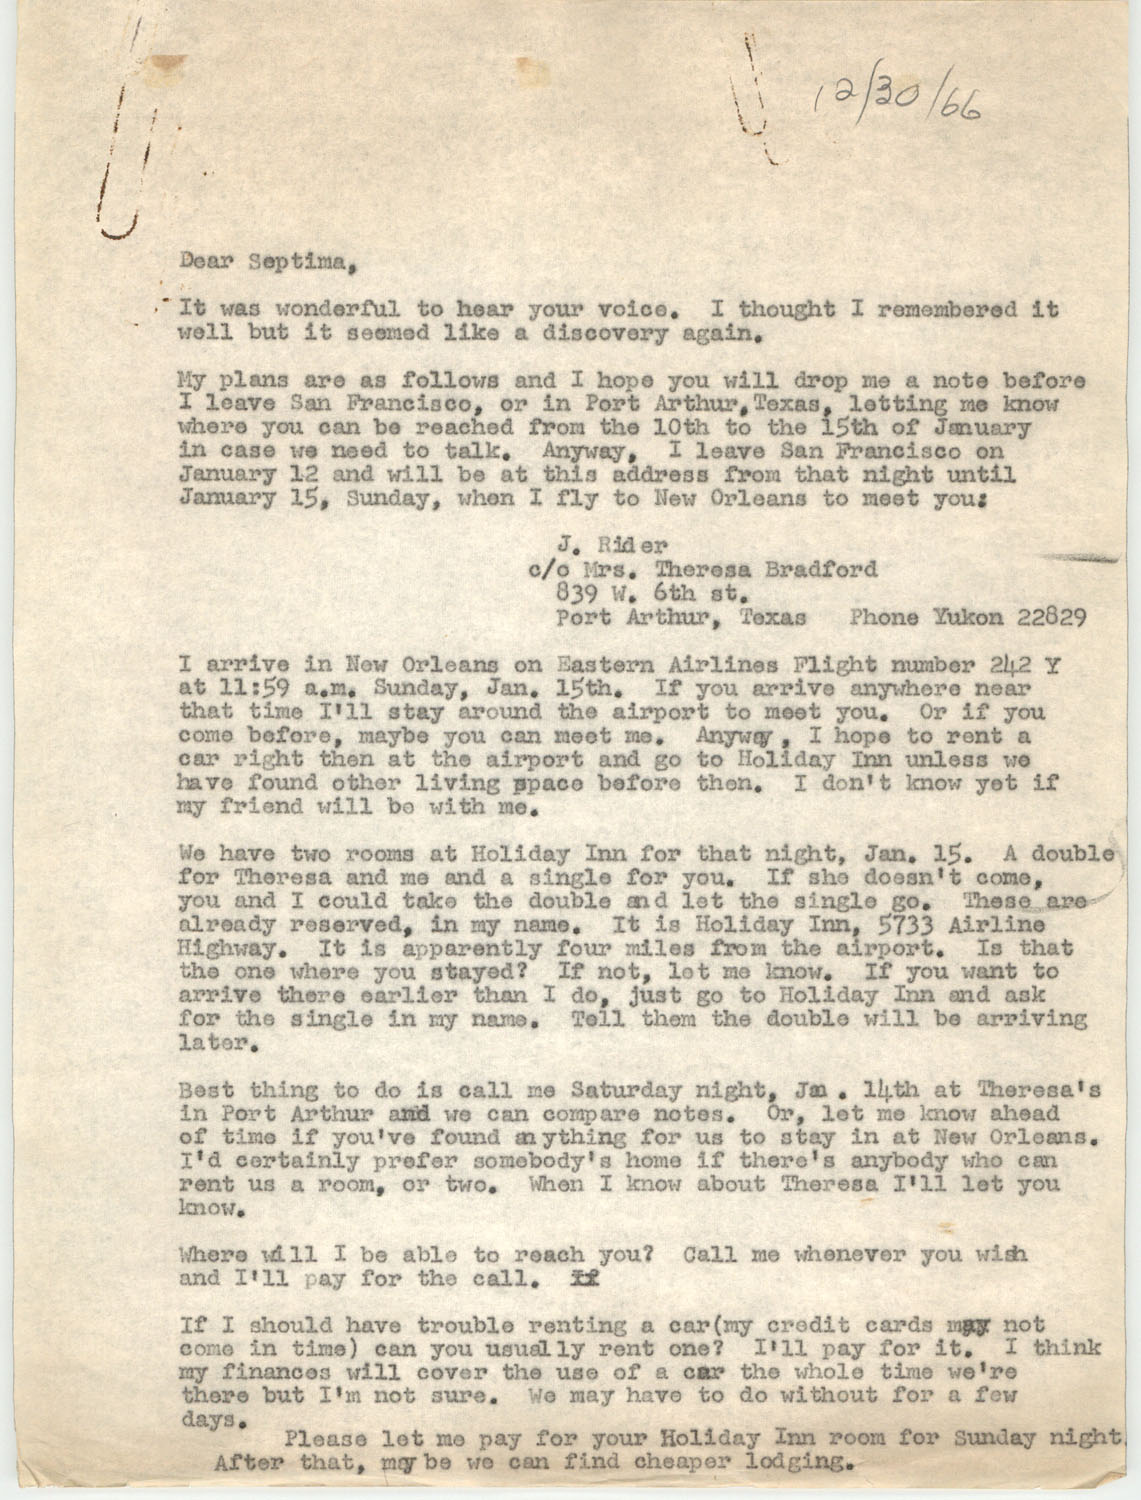 Letter from Septima P. Clark to Josephine Rider, December 30, 1966